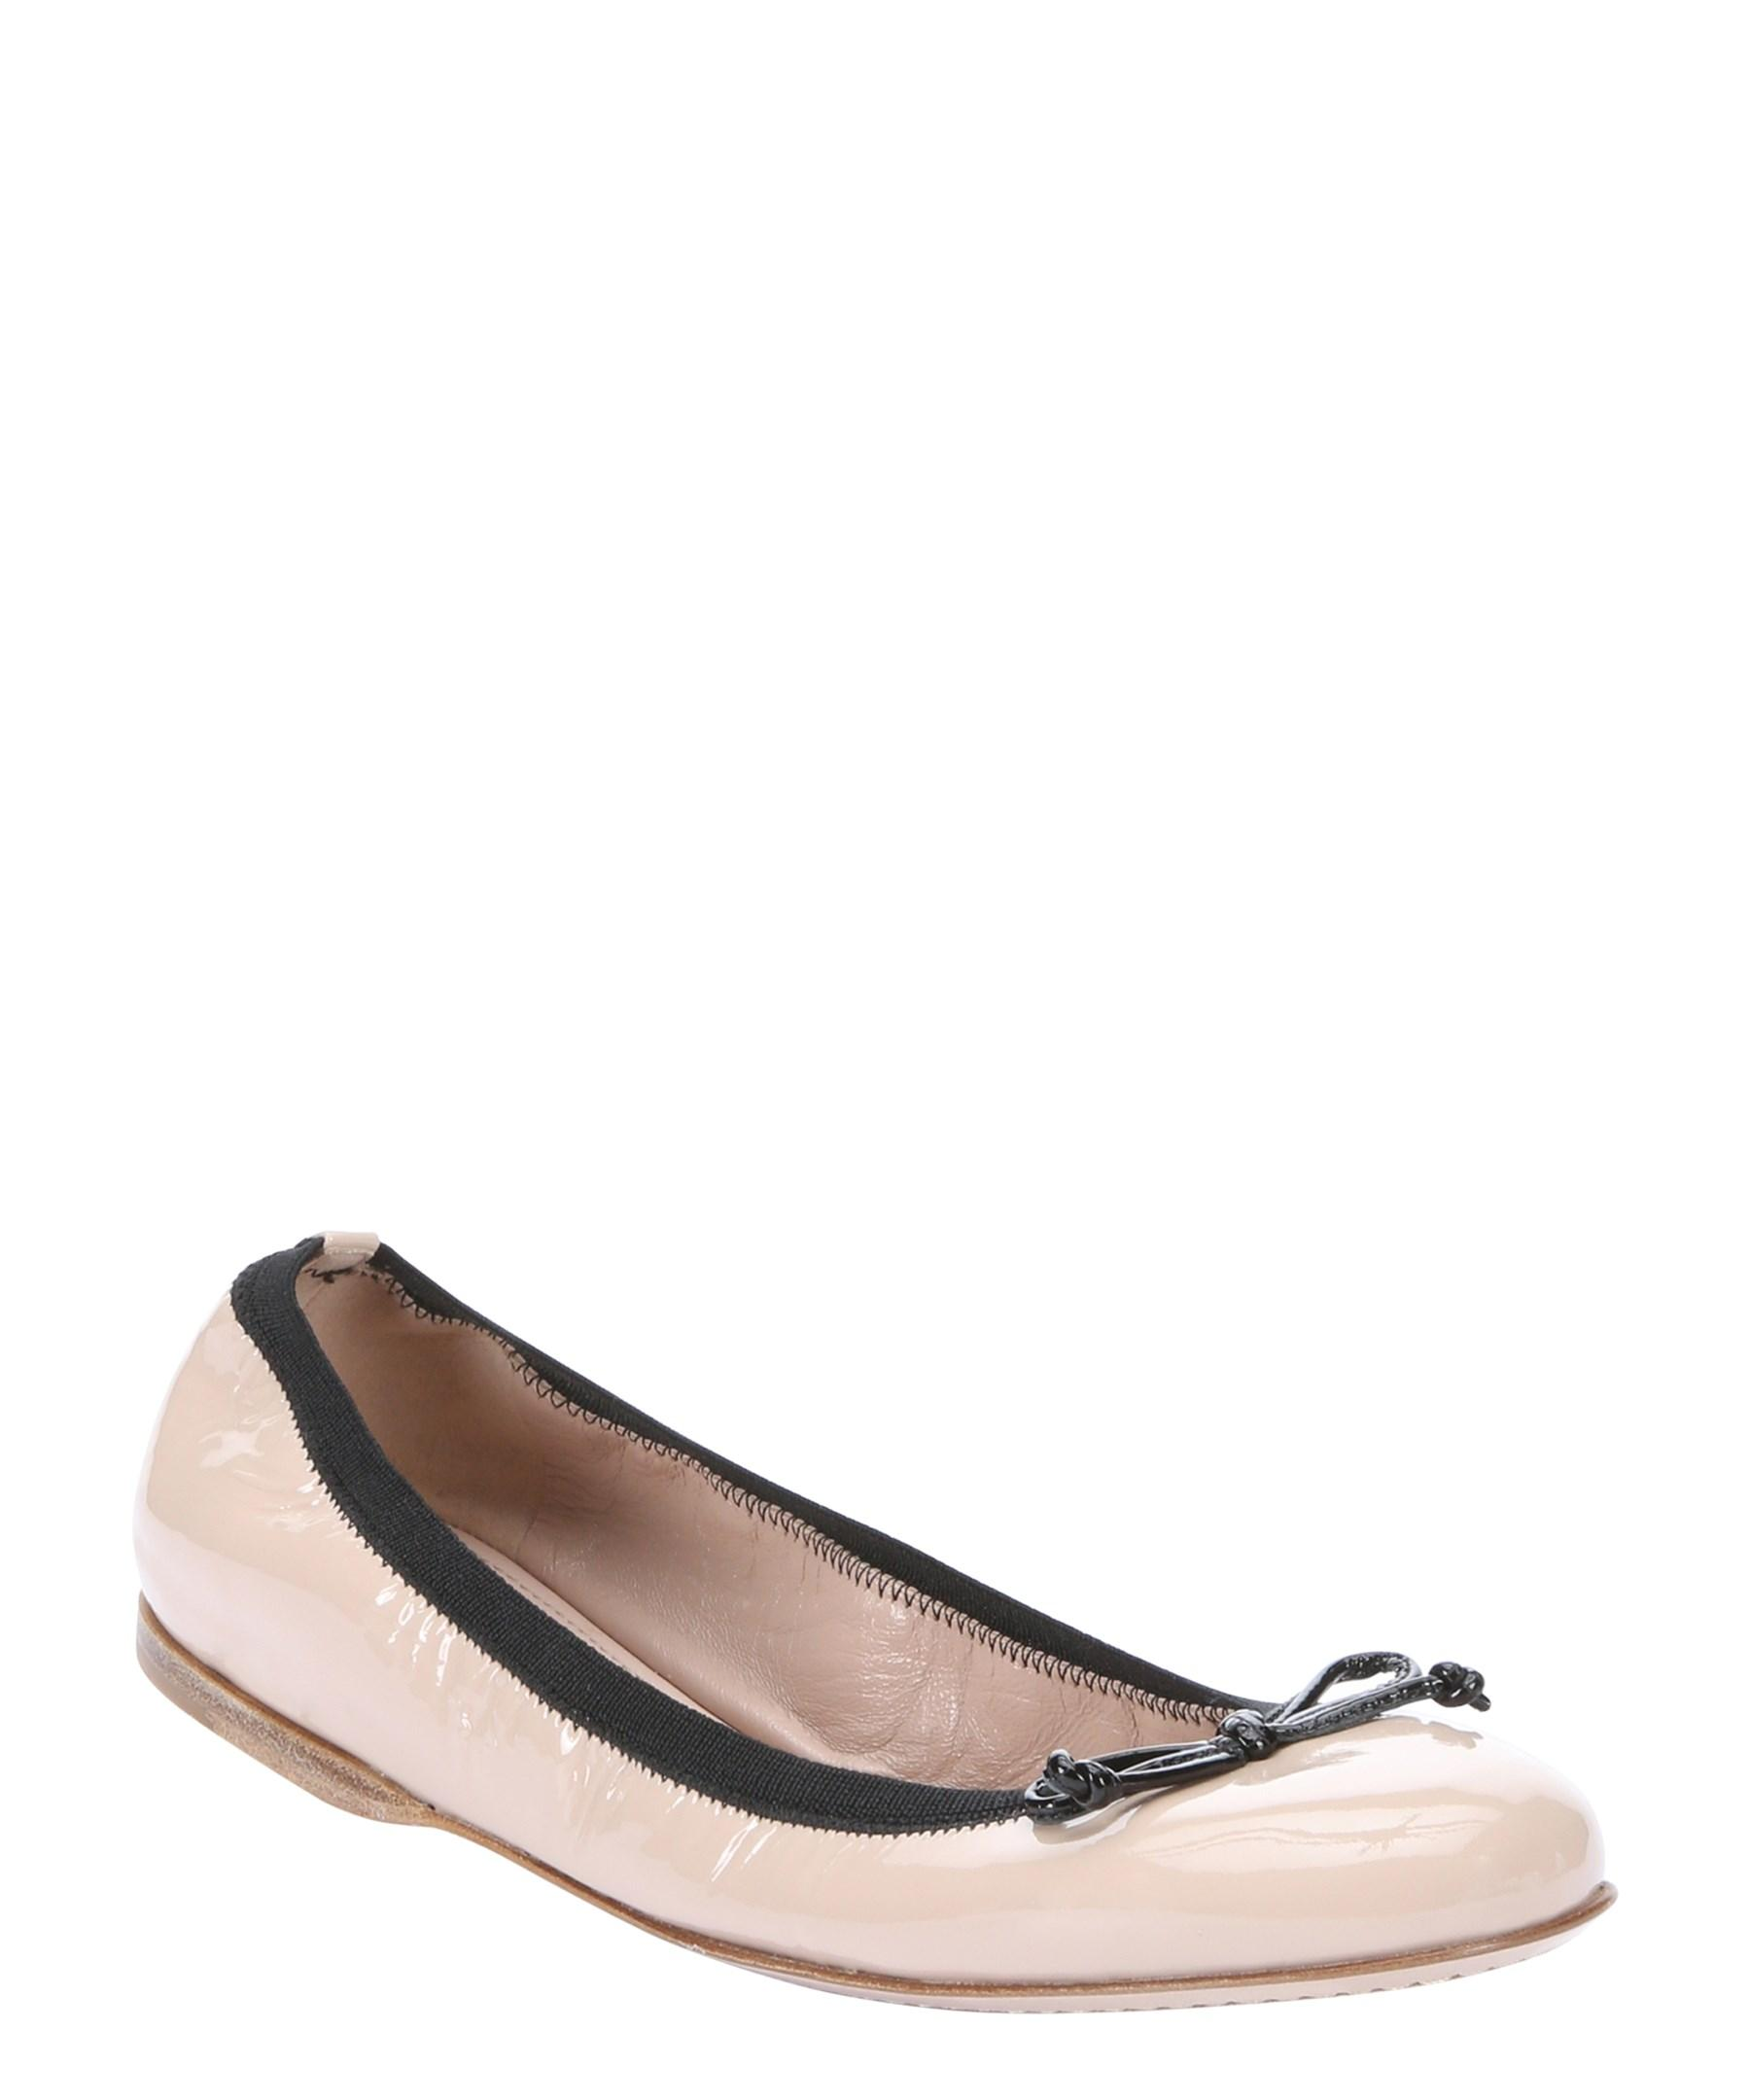 miu miu powder pink patent leather bow ballerina flats in natural lyst. Black Bedroom Furniture Sets. Home Design Ideas